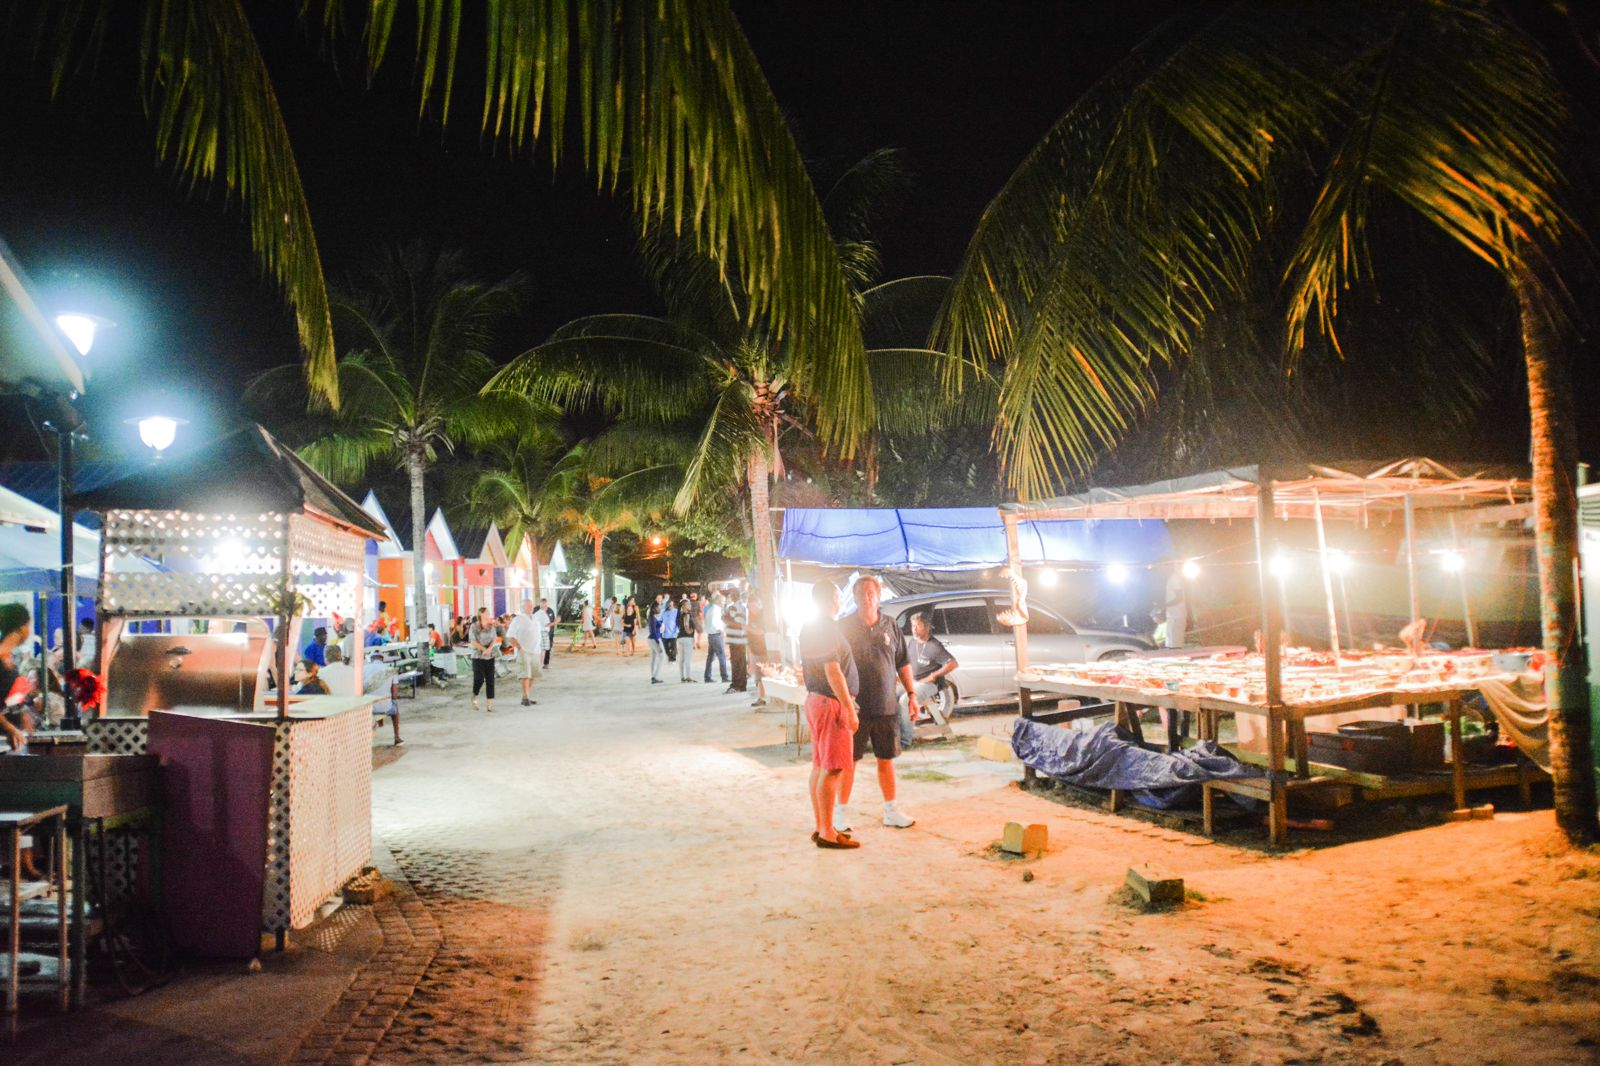 Spending An Exciting Evening At Oistins Fish Fry In Barbados (7)